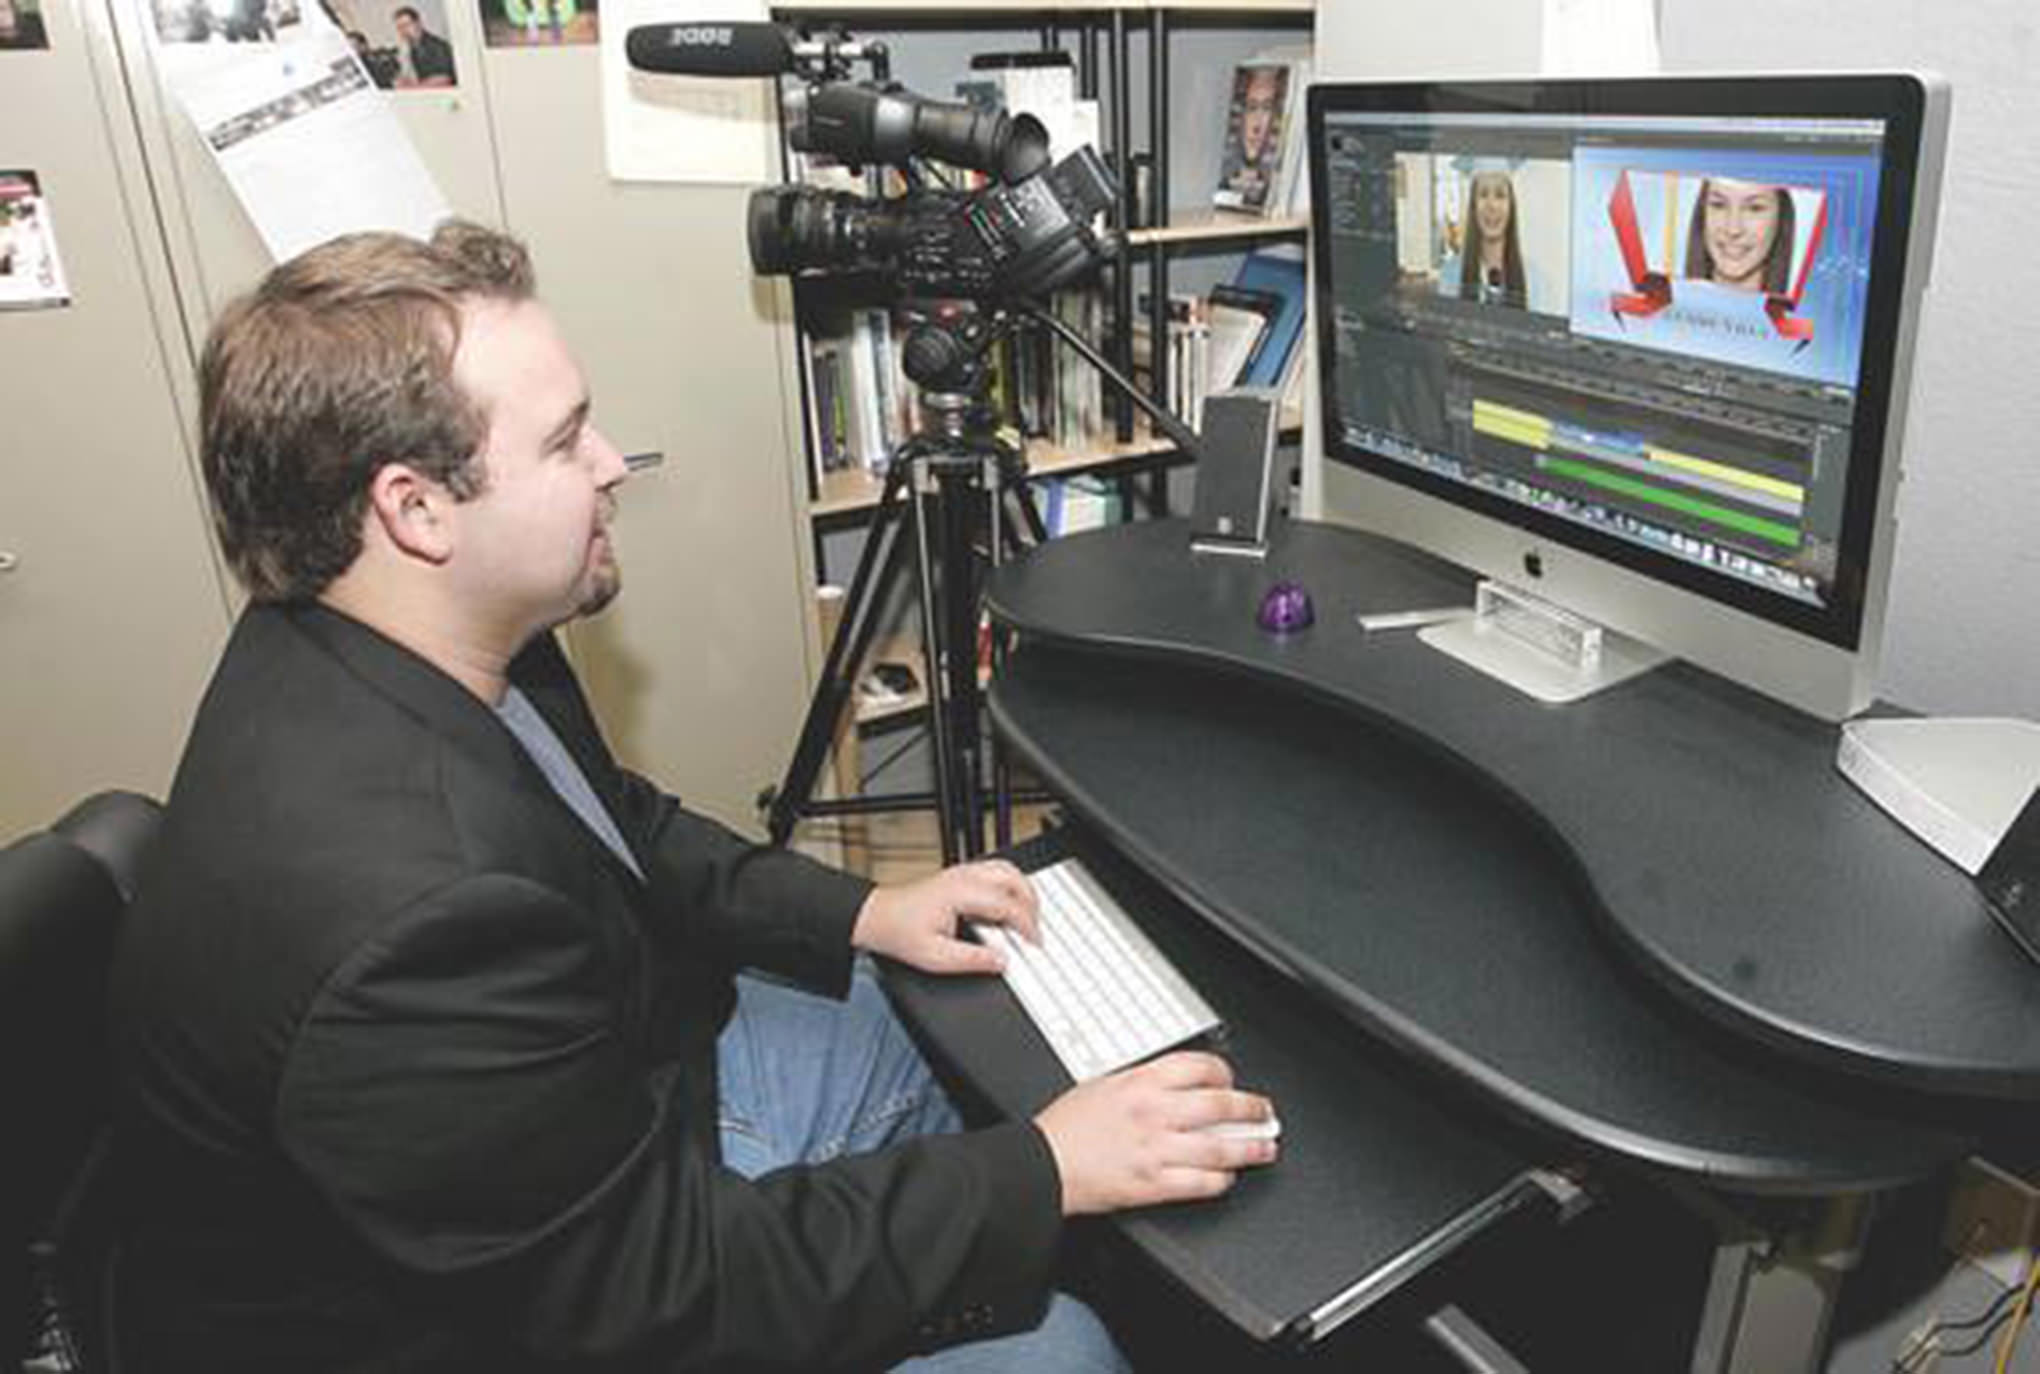 Joshua Cordero shows off his studio and video production business inside his home in Armona on Wednesday afternoon. (Gary Feinstein/The Sentinel)